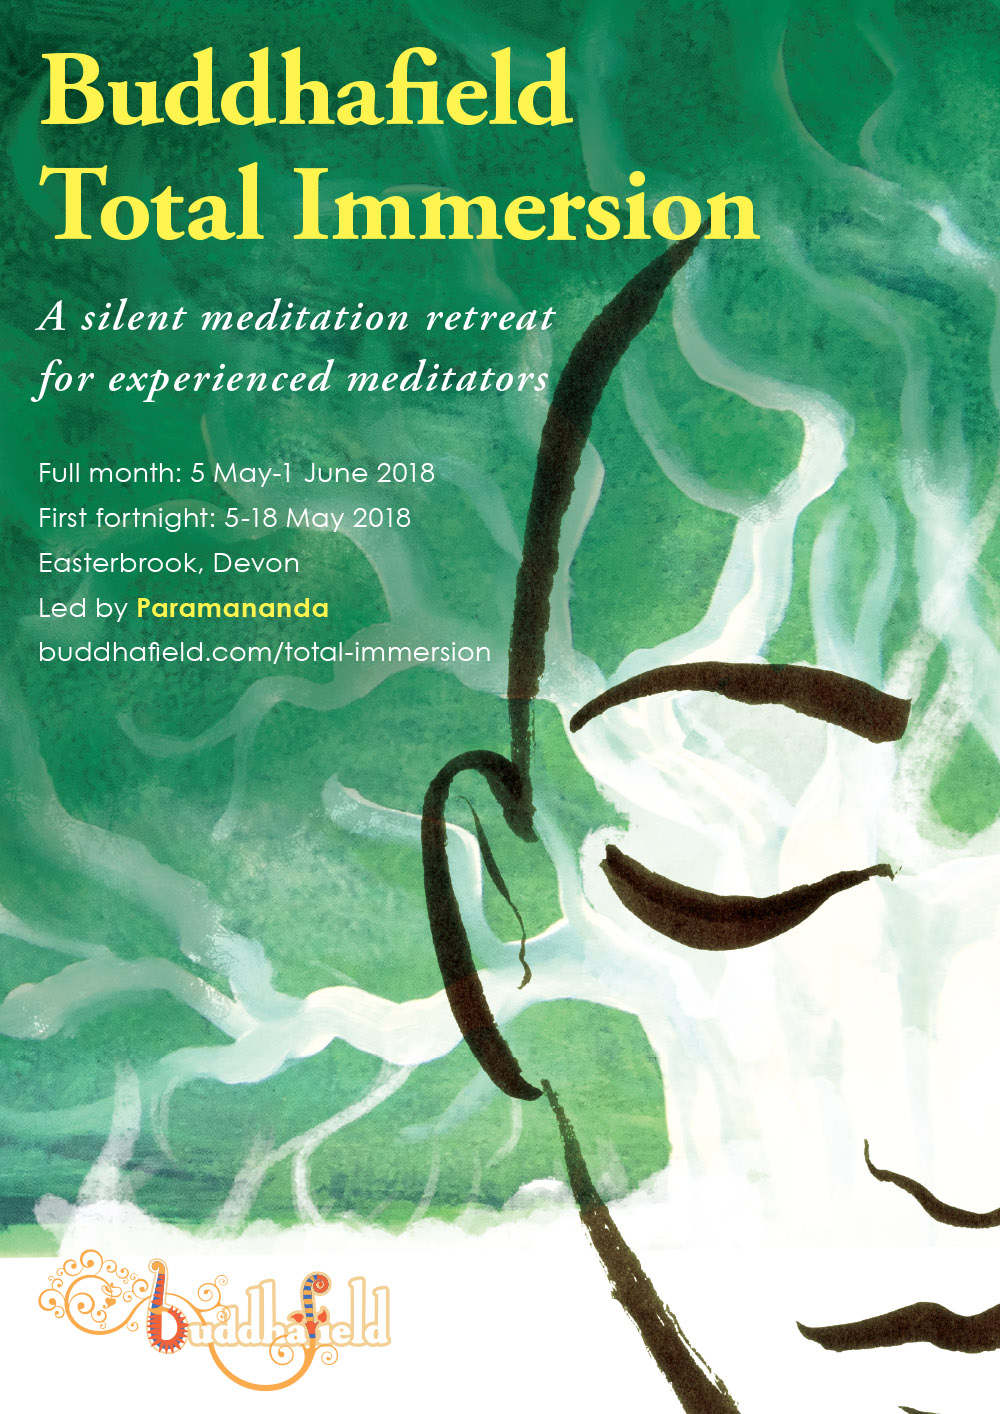 buddhafield total immersion poster illustration design